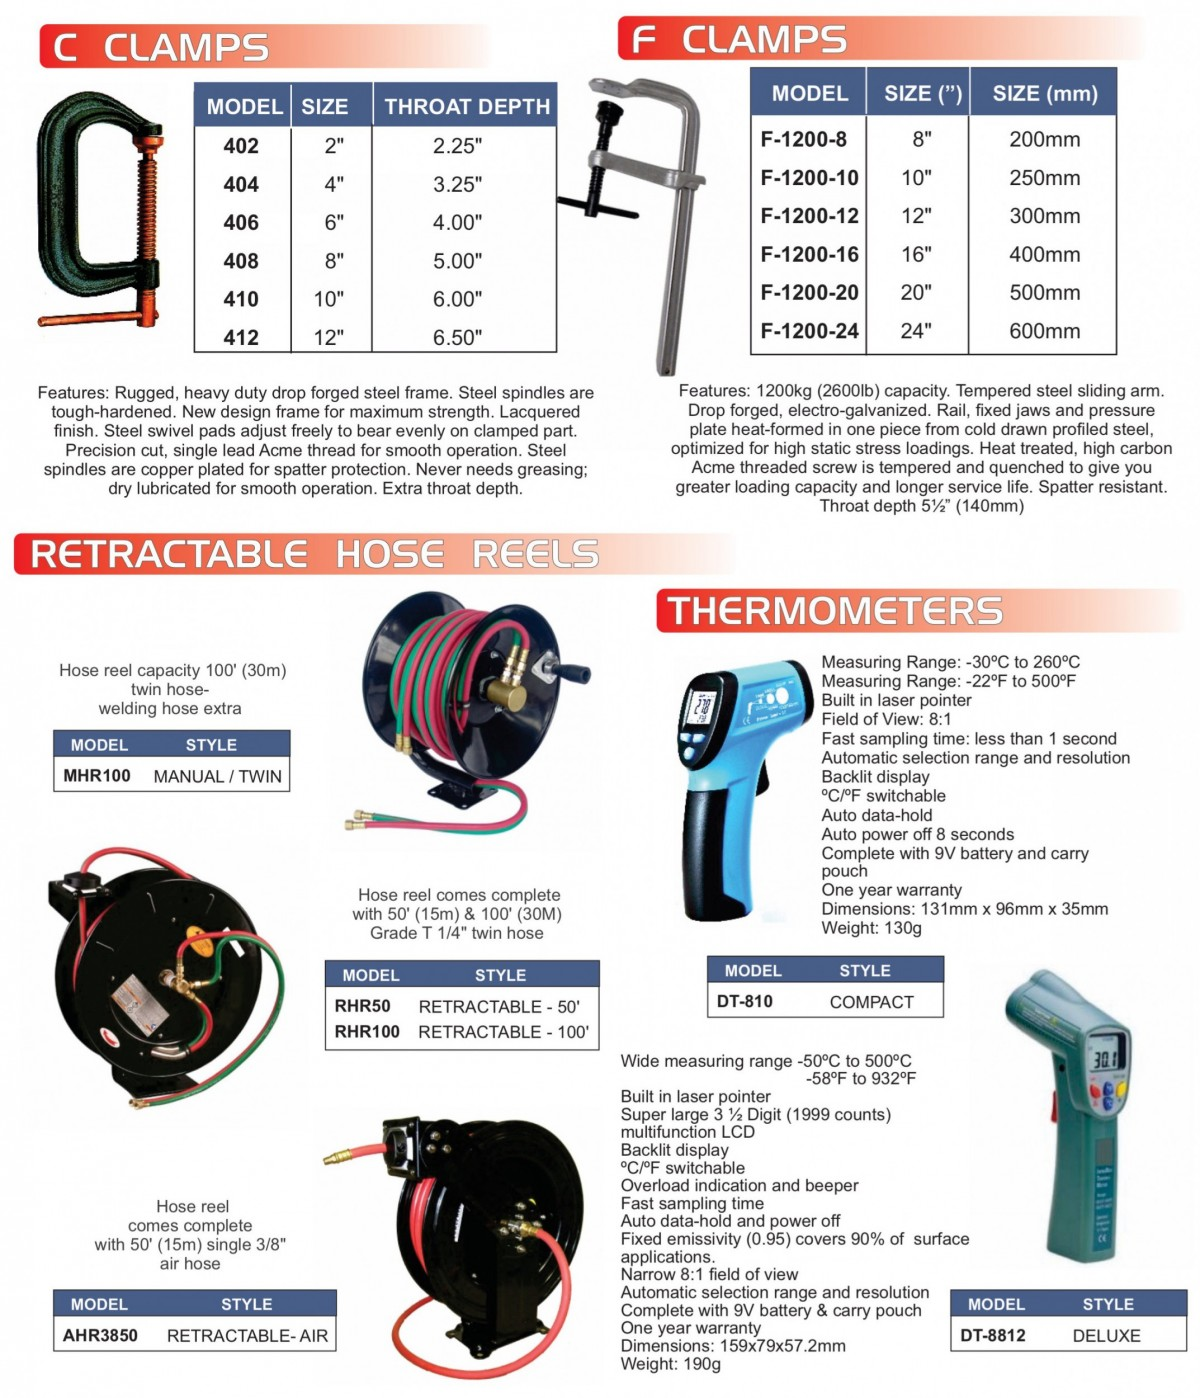 C & F Clamps, Retractable Hose Reels, Thermometers